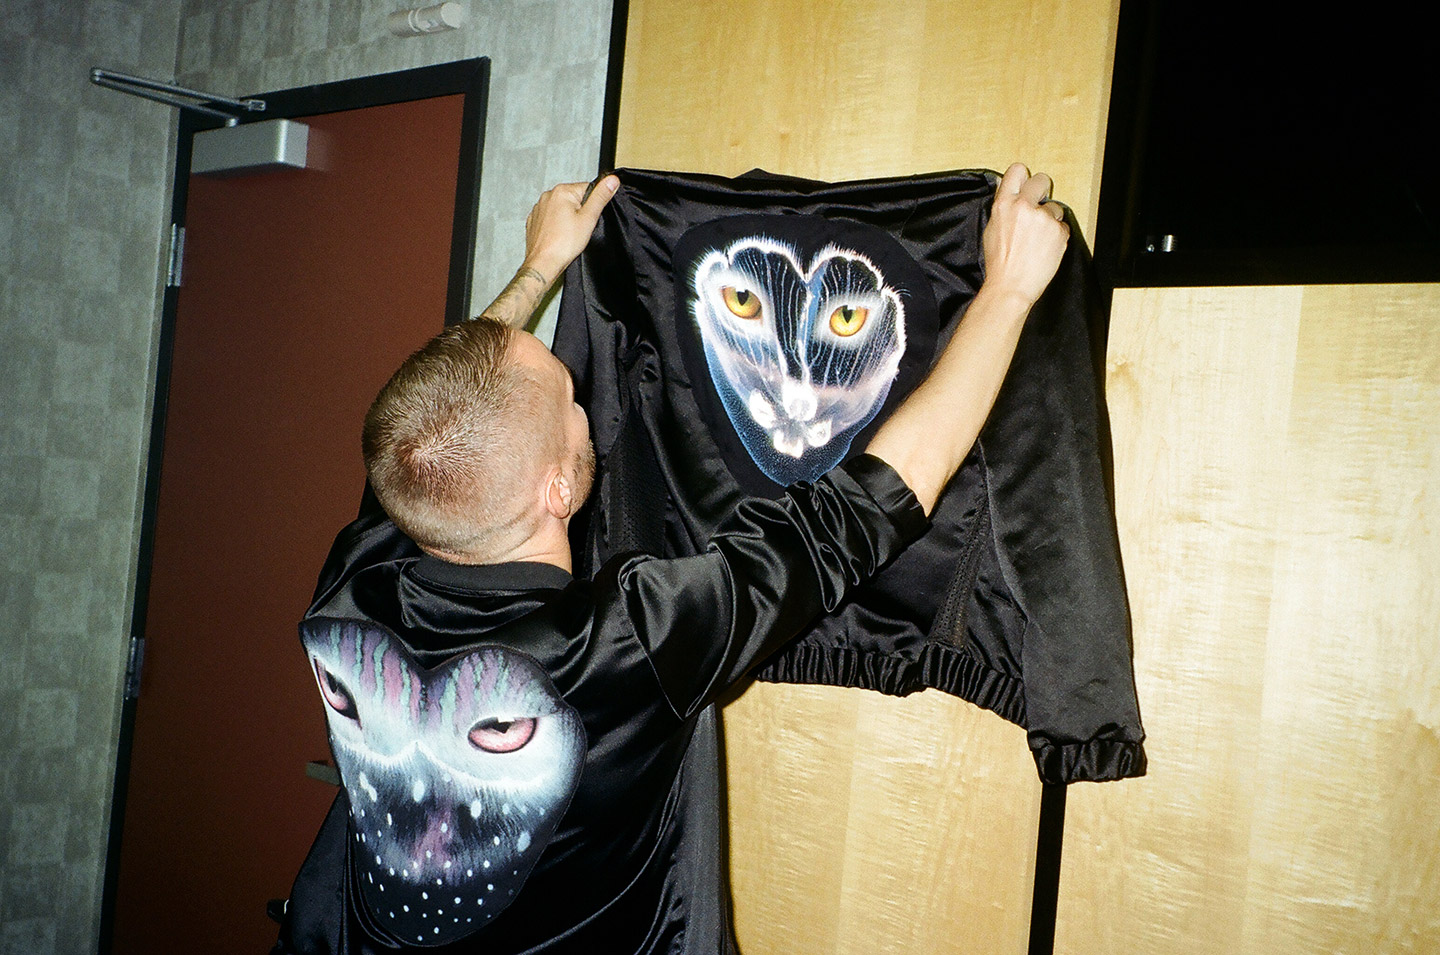 Christian Karlsson of Galantis. Behind the scenes of the music video by mosss